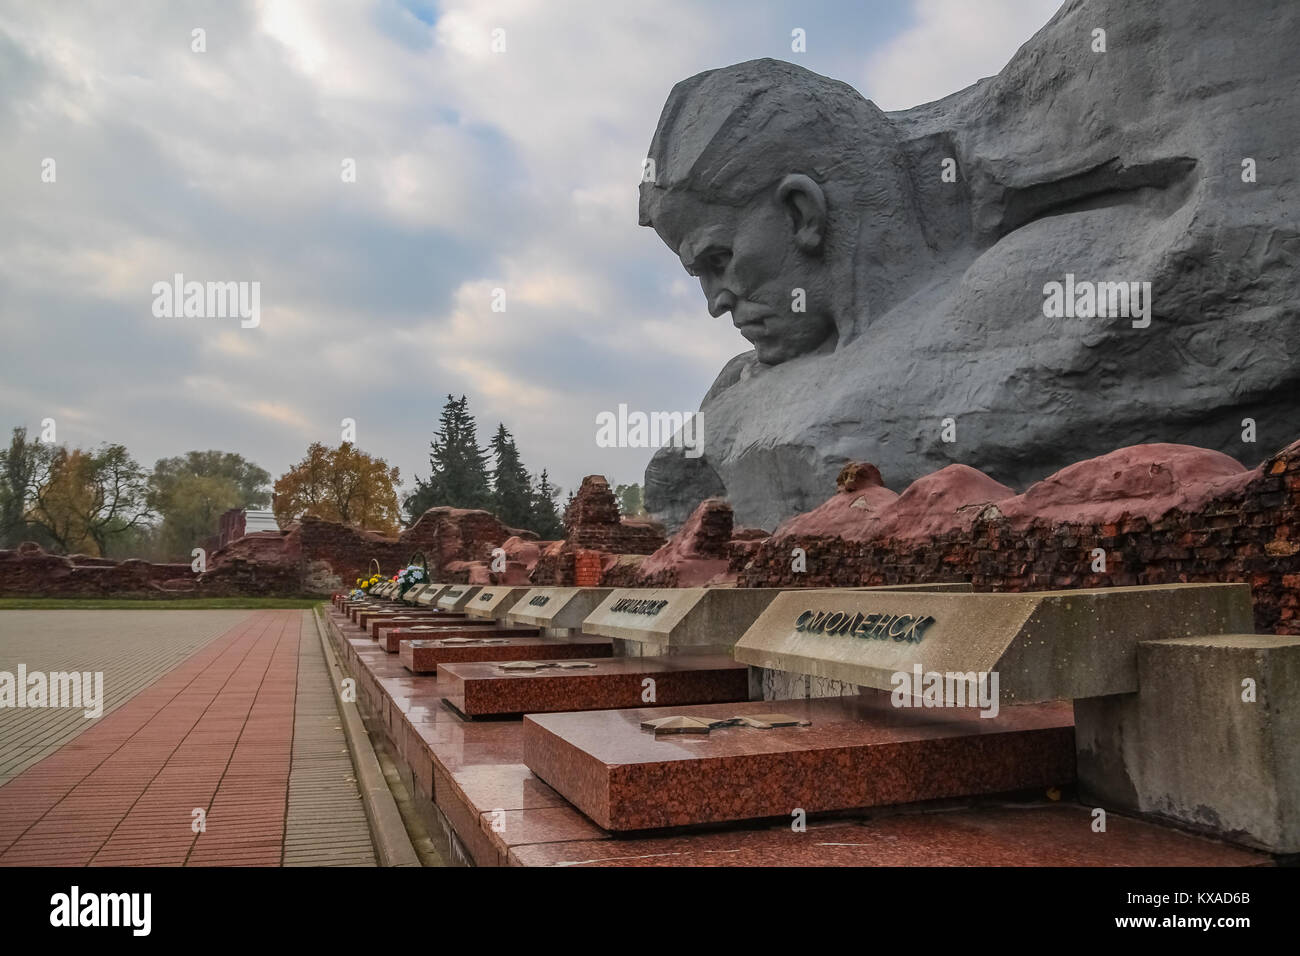 Brest, Belarus - October 22, 2013: Autumn view of the monument 'Courage' in the Brest Fortress - Stock Image